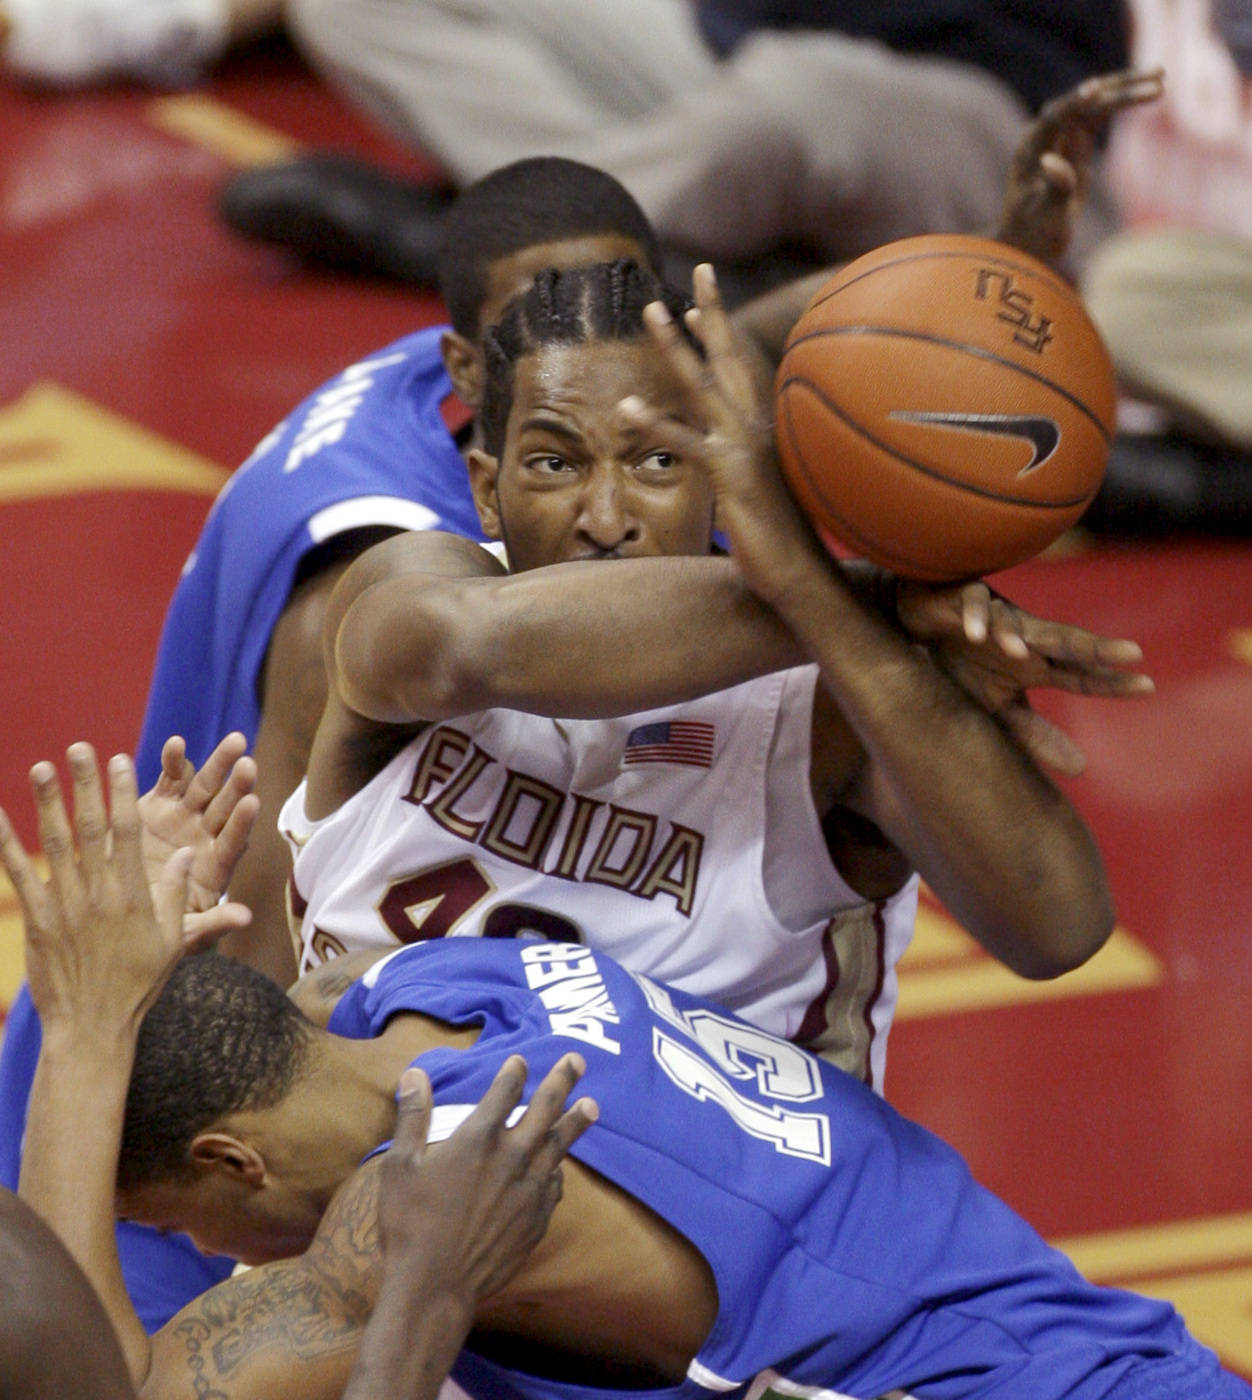 Florida State's Ryan Reid, center, battles for a first-half rebound during an NCAA college basketball game against Texas A&M-Corpus Christi, Monday, Jan. 4, 2010, in Tallahassee, Fla. (AP Photo/Phil Coale)